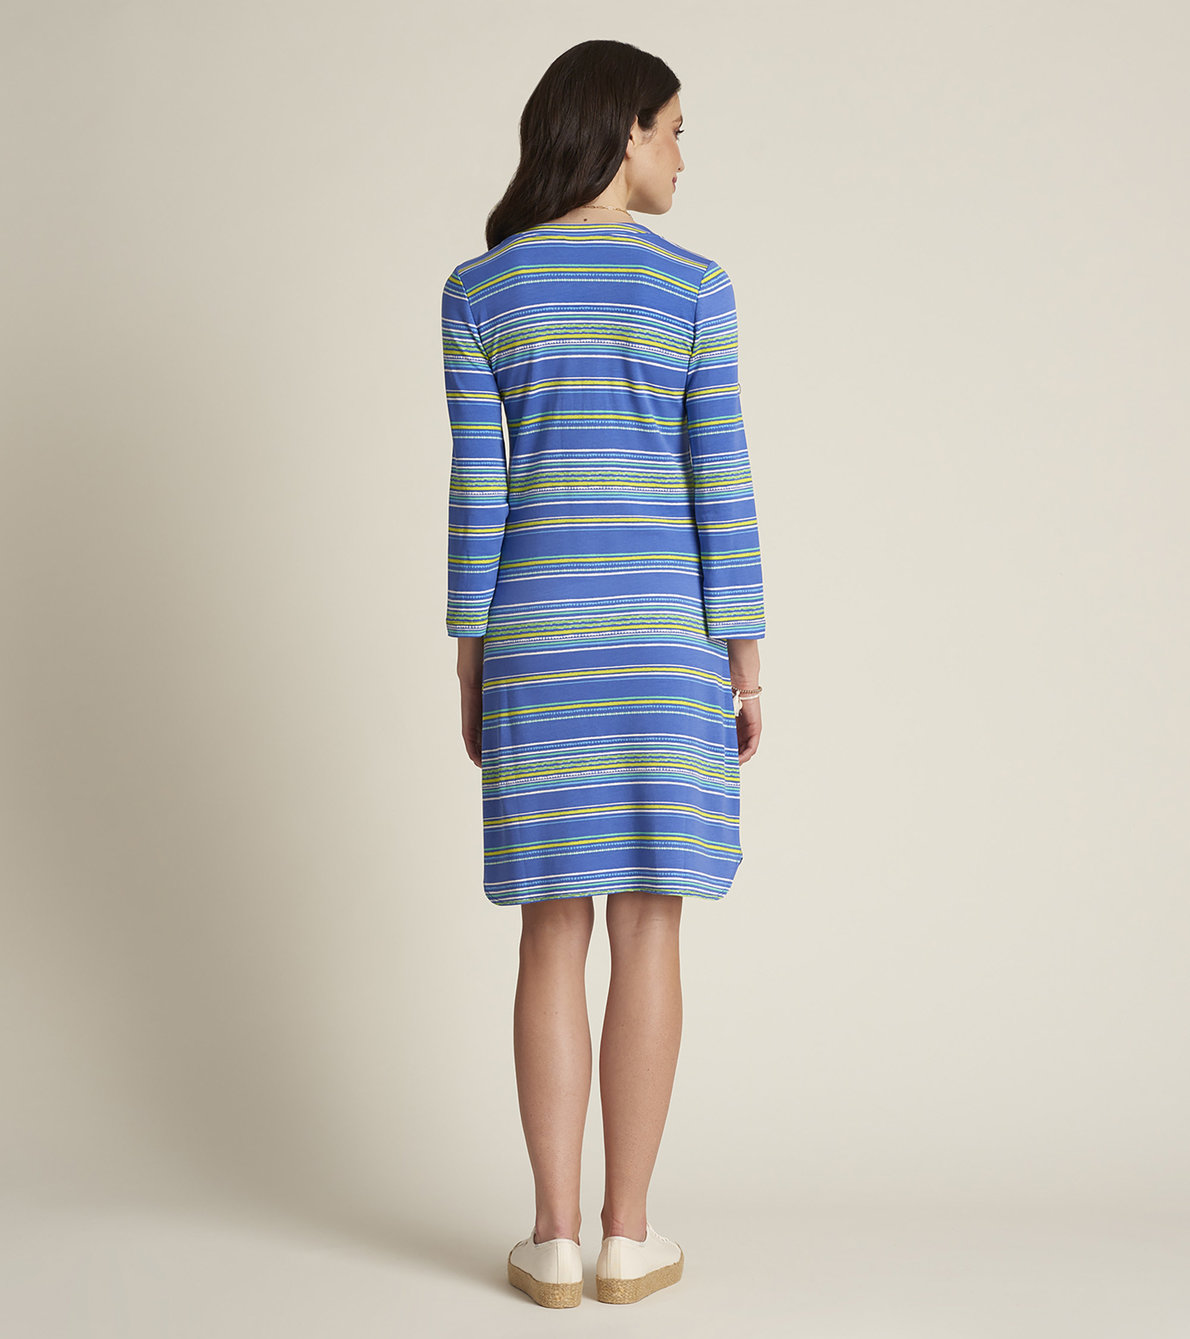 View larger image of Ashley Dress - Tropical Stripes